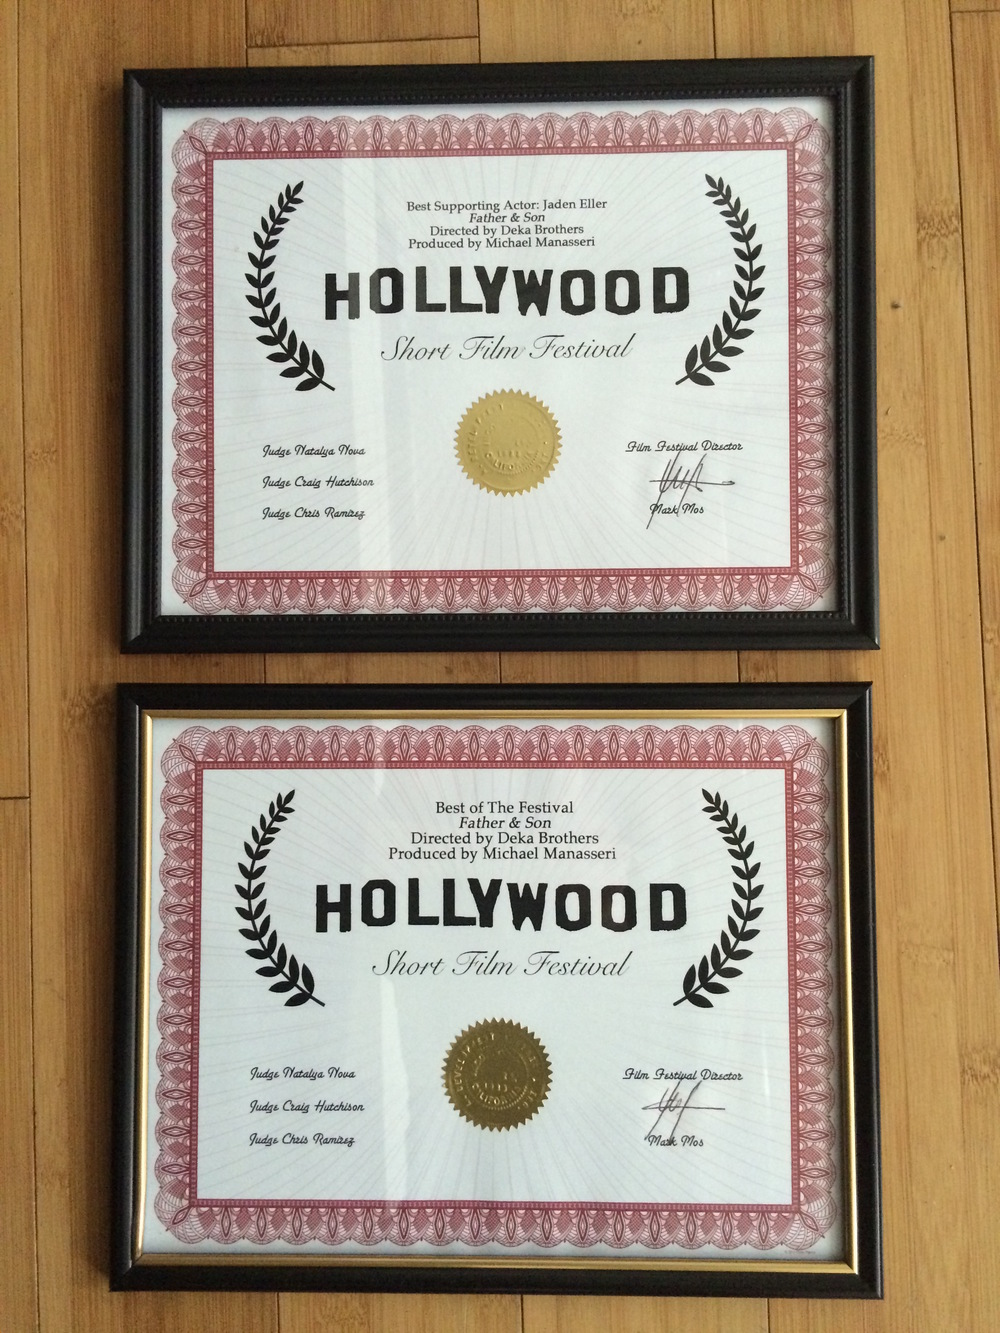 Hollywood Short Film Festival 2015